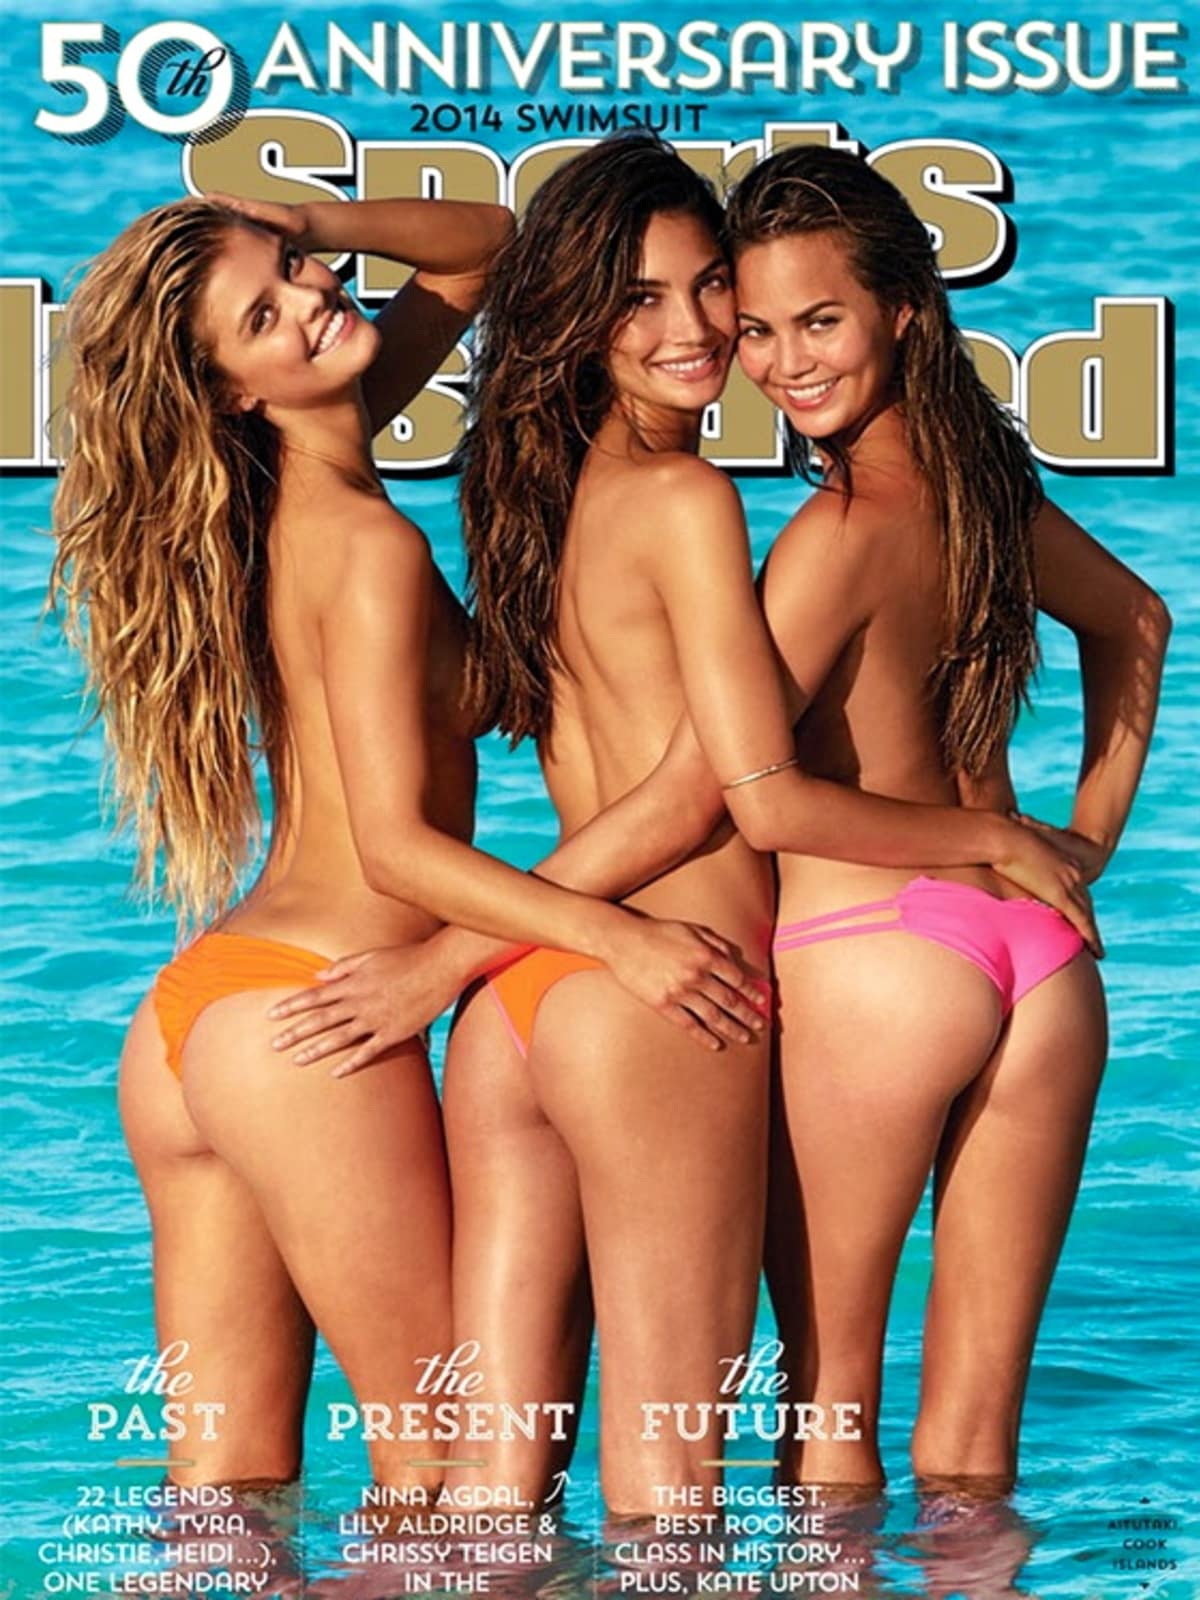 Houston, Chrissy Teigen, July 2015, 2014 Sports Illustrated Swimsuit cover